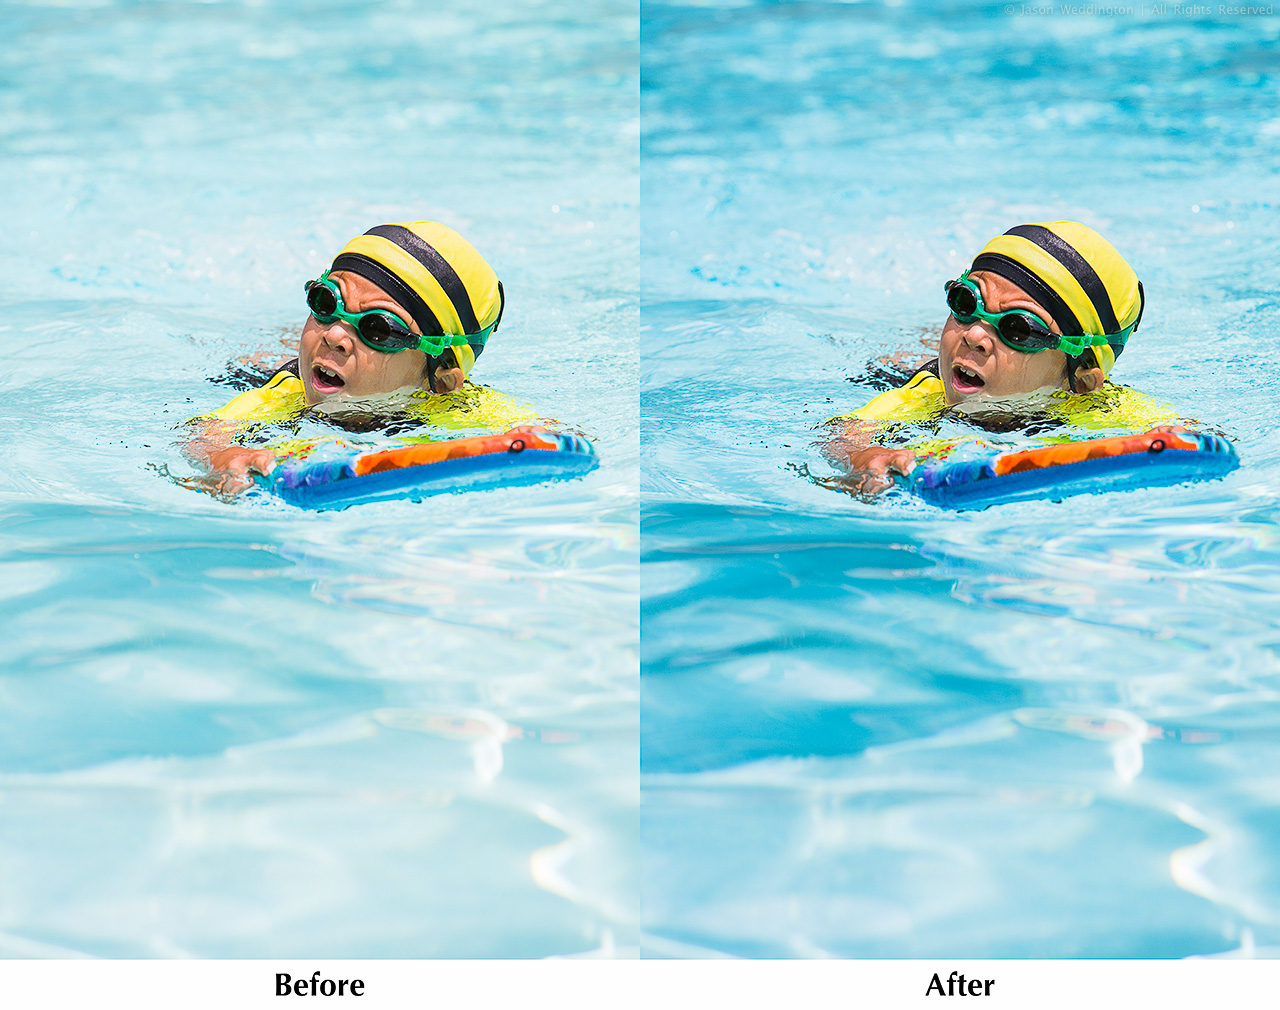 How to use the Radial Filter Tool in Lightroom 5